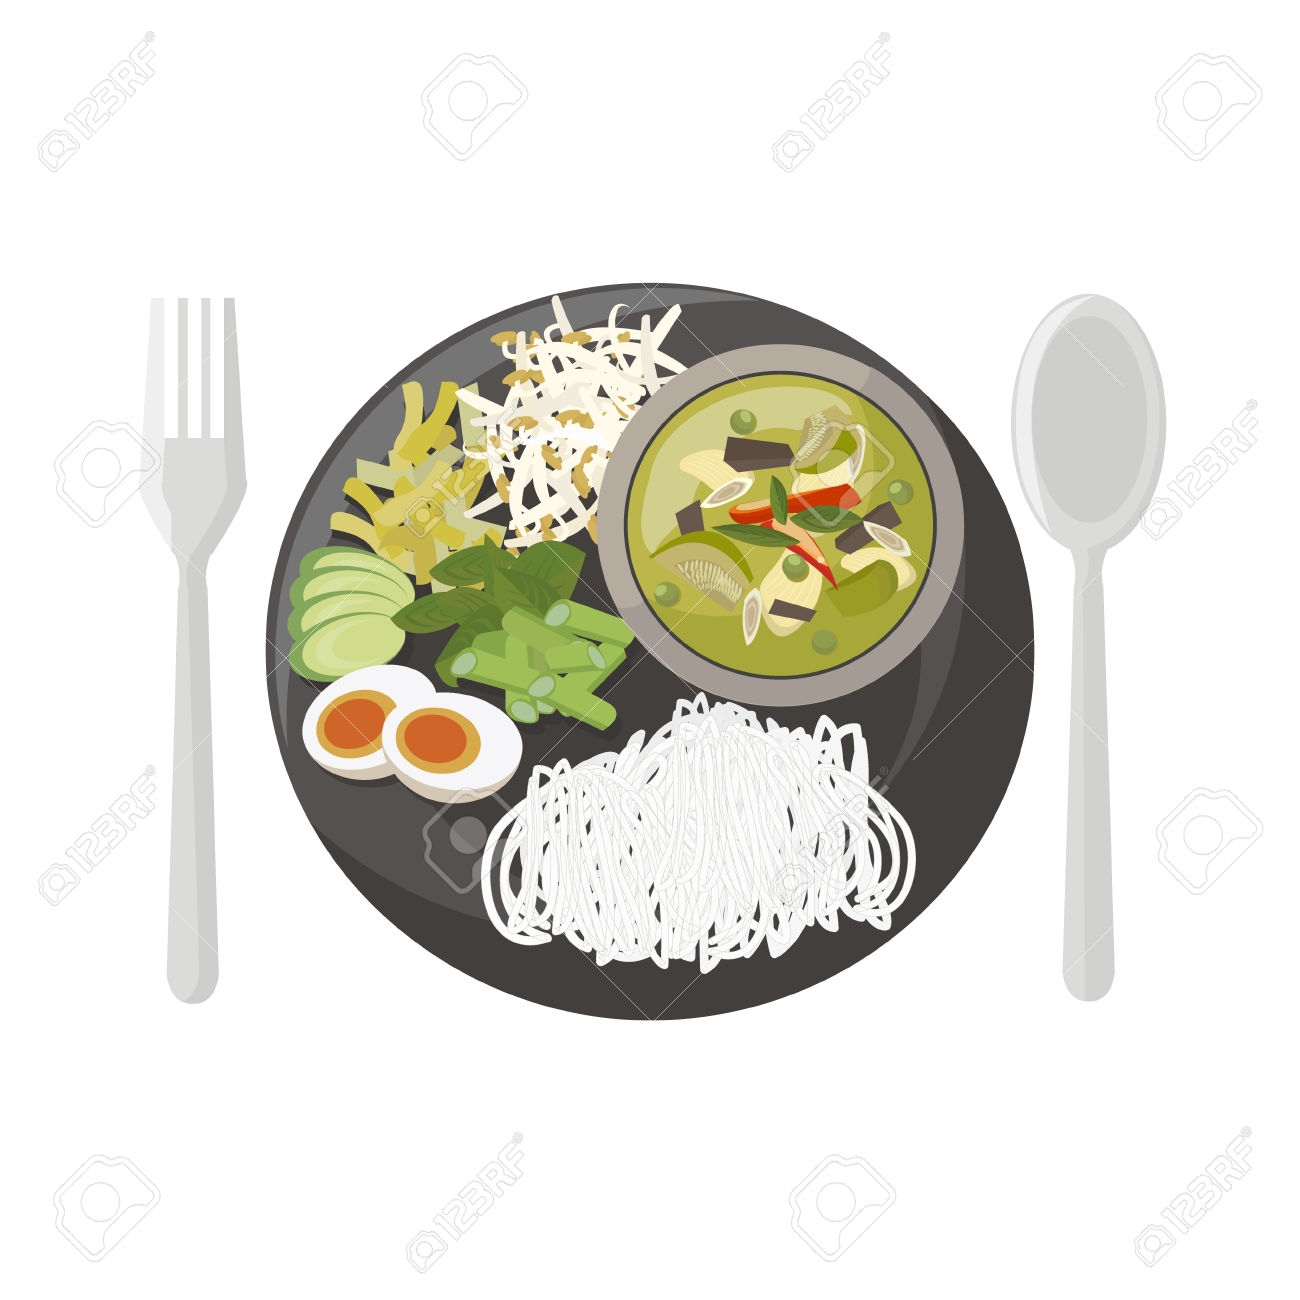 thai food clipart free clipground Shark Clip Art Black and White And White Black Isdaclipart